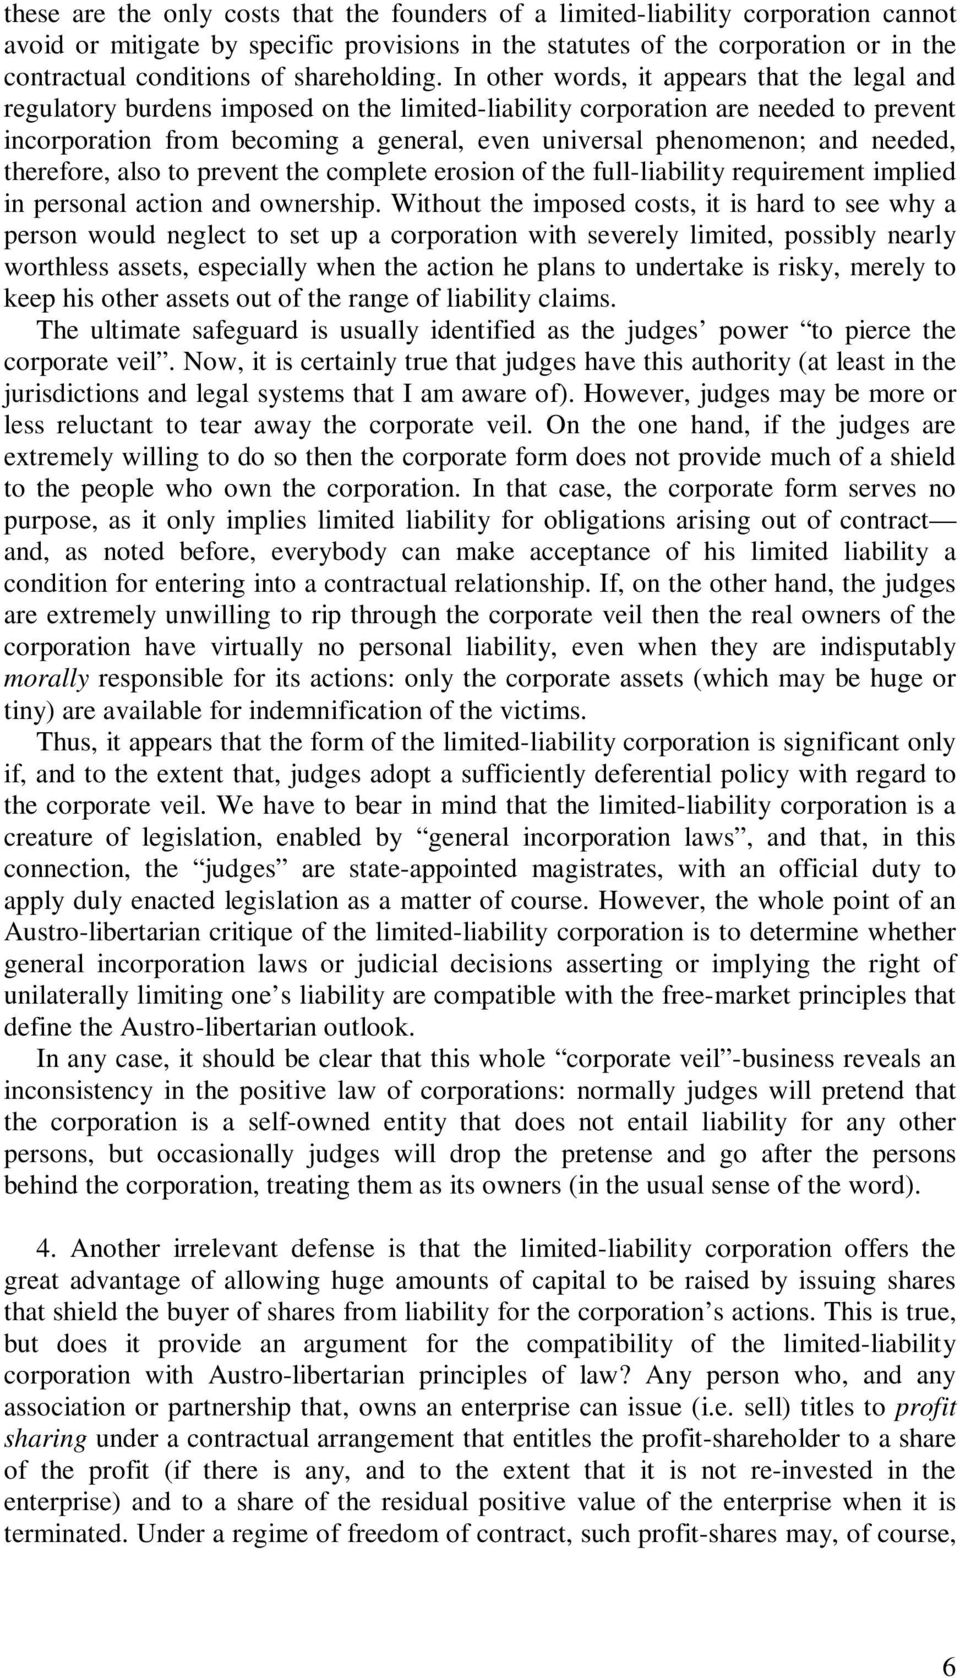 In other words, it appears that the legal and regulatory burdens imposed on the limited-liability corporation are needed to prevent incorporation from becoming a general, even universal phenomenon;